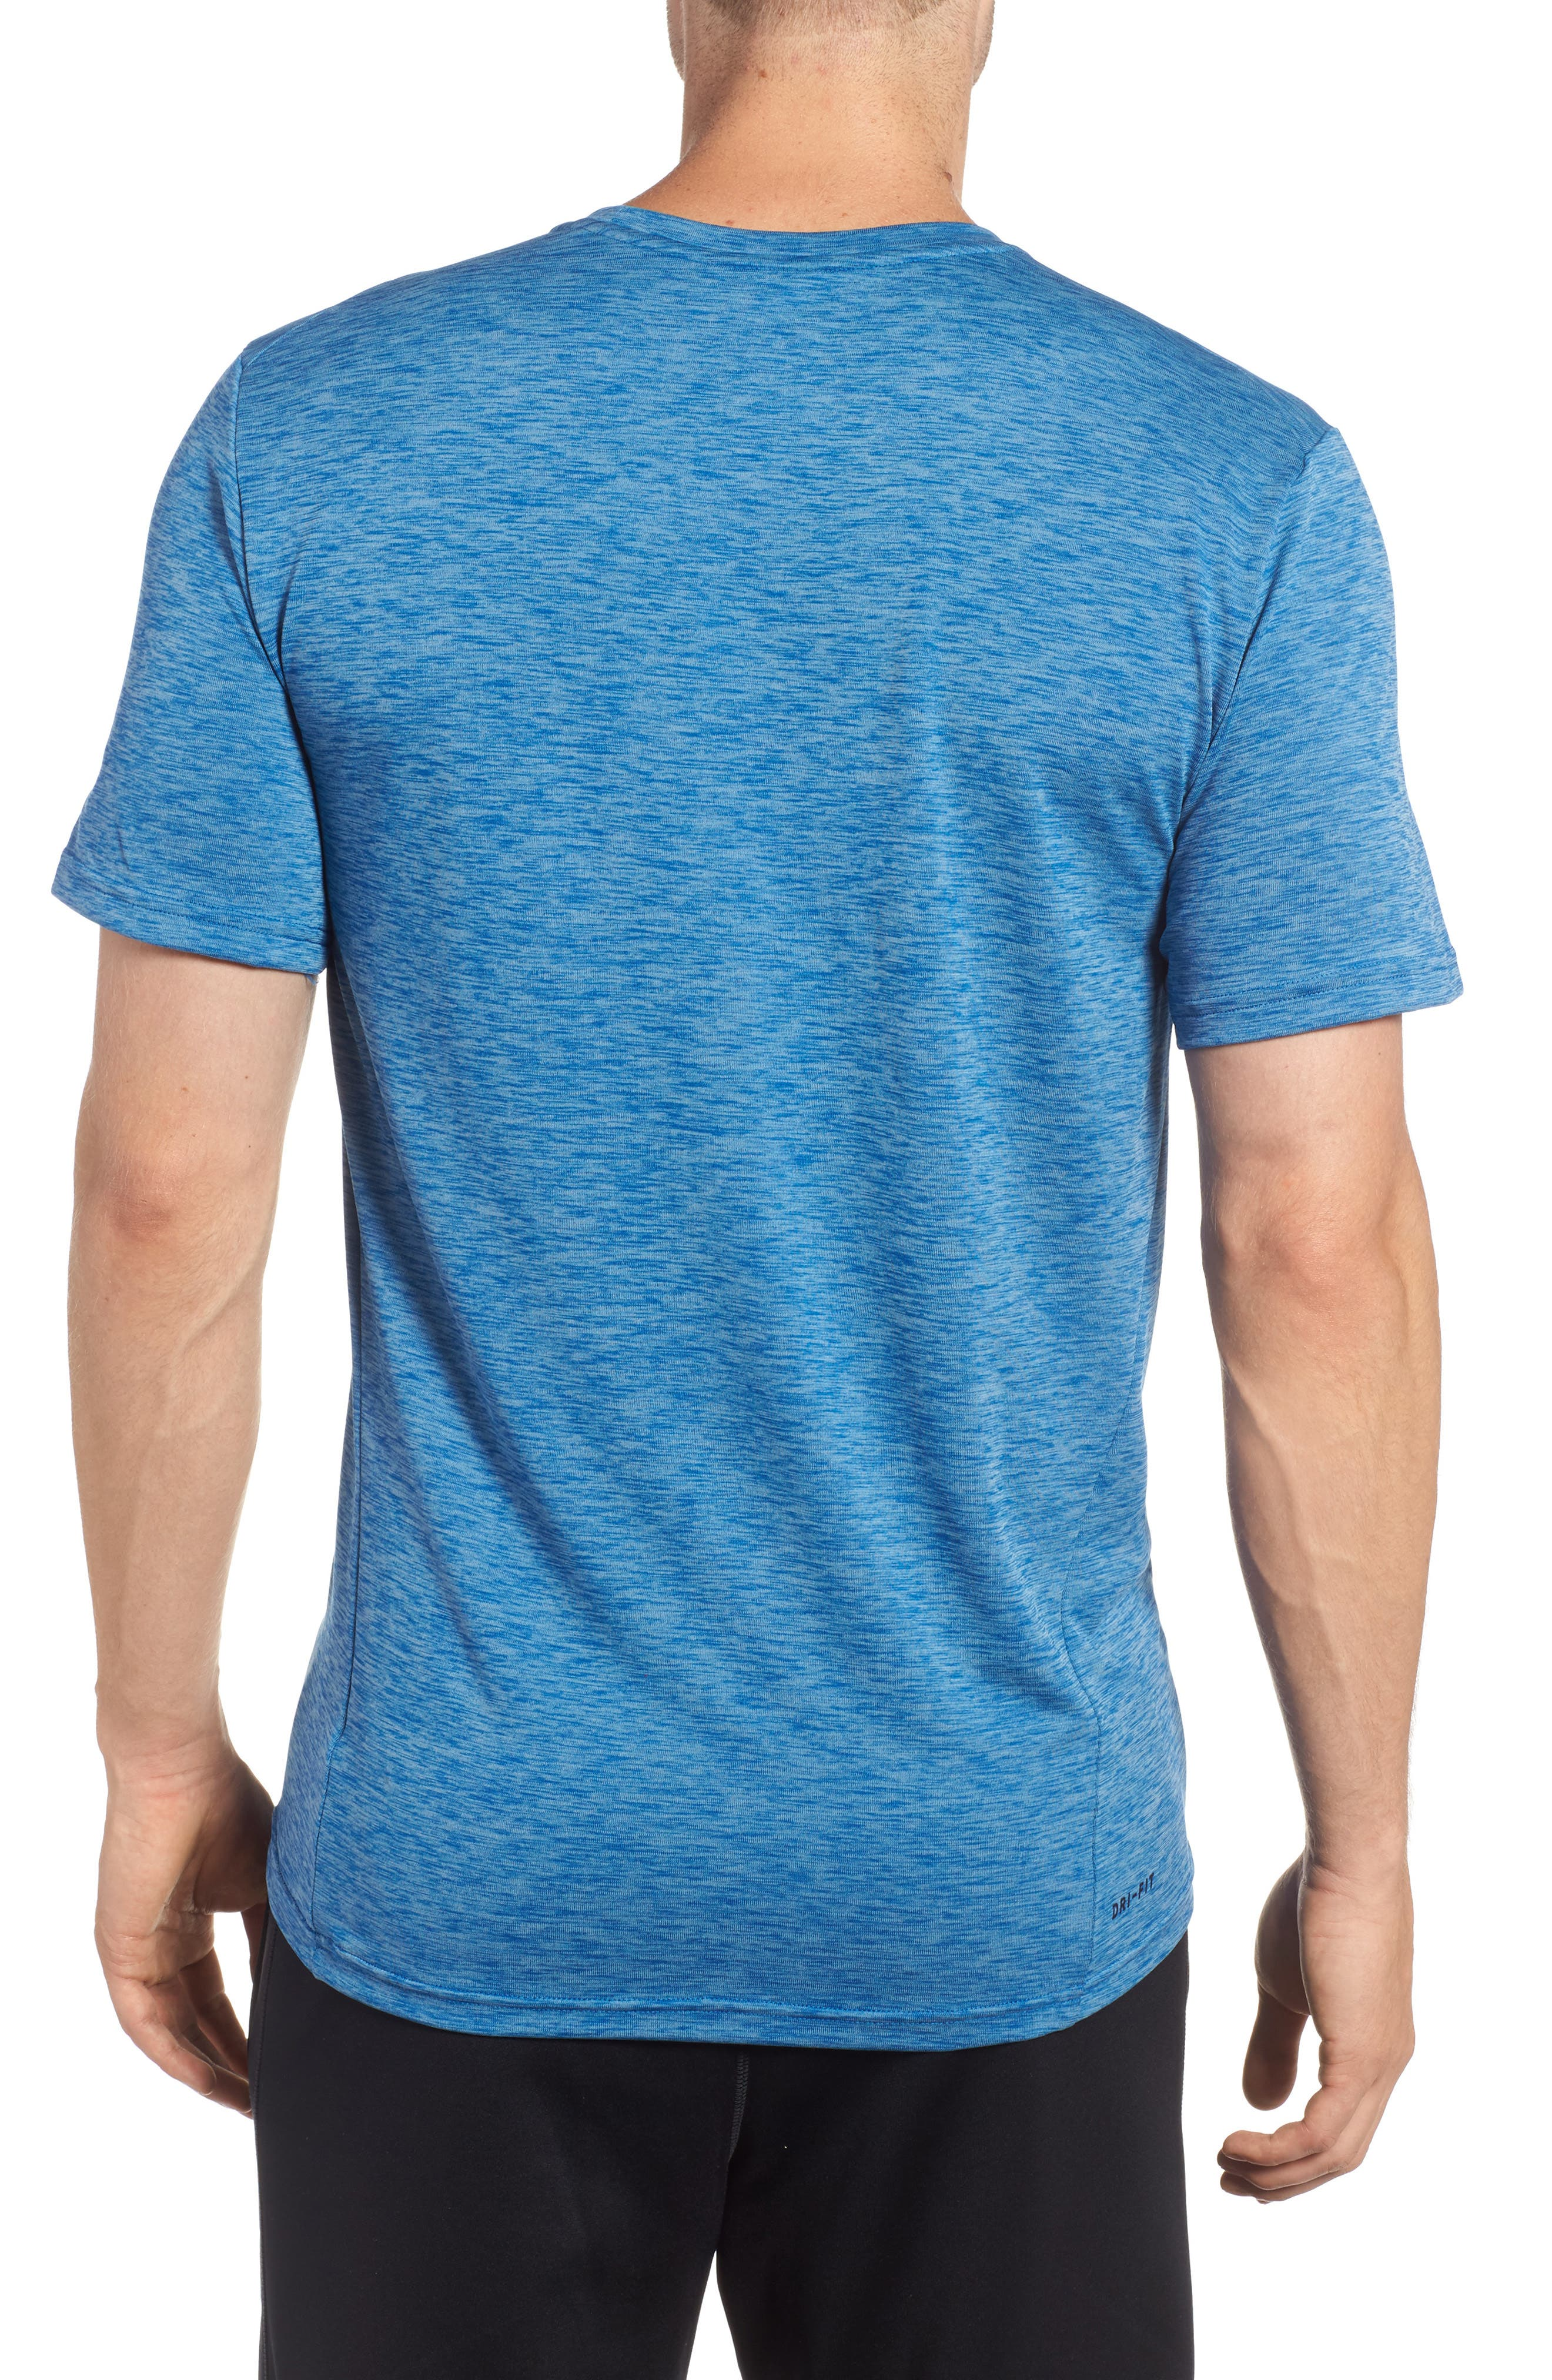 Hyper Dry Training Tee,                             Alternate thumbnail 2, color,                             Cerulean/ Blue Jay/ Black